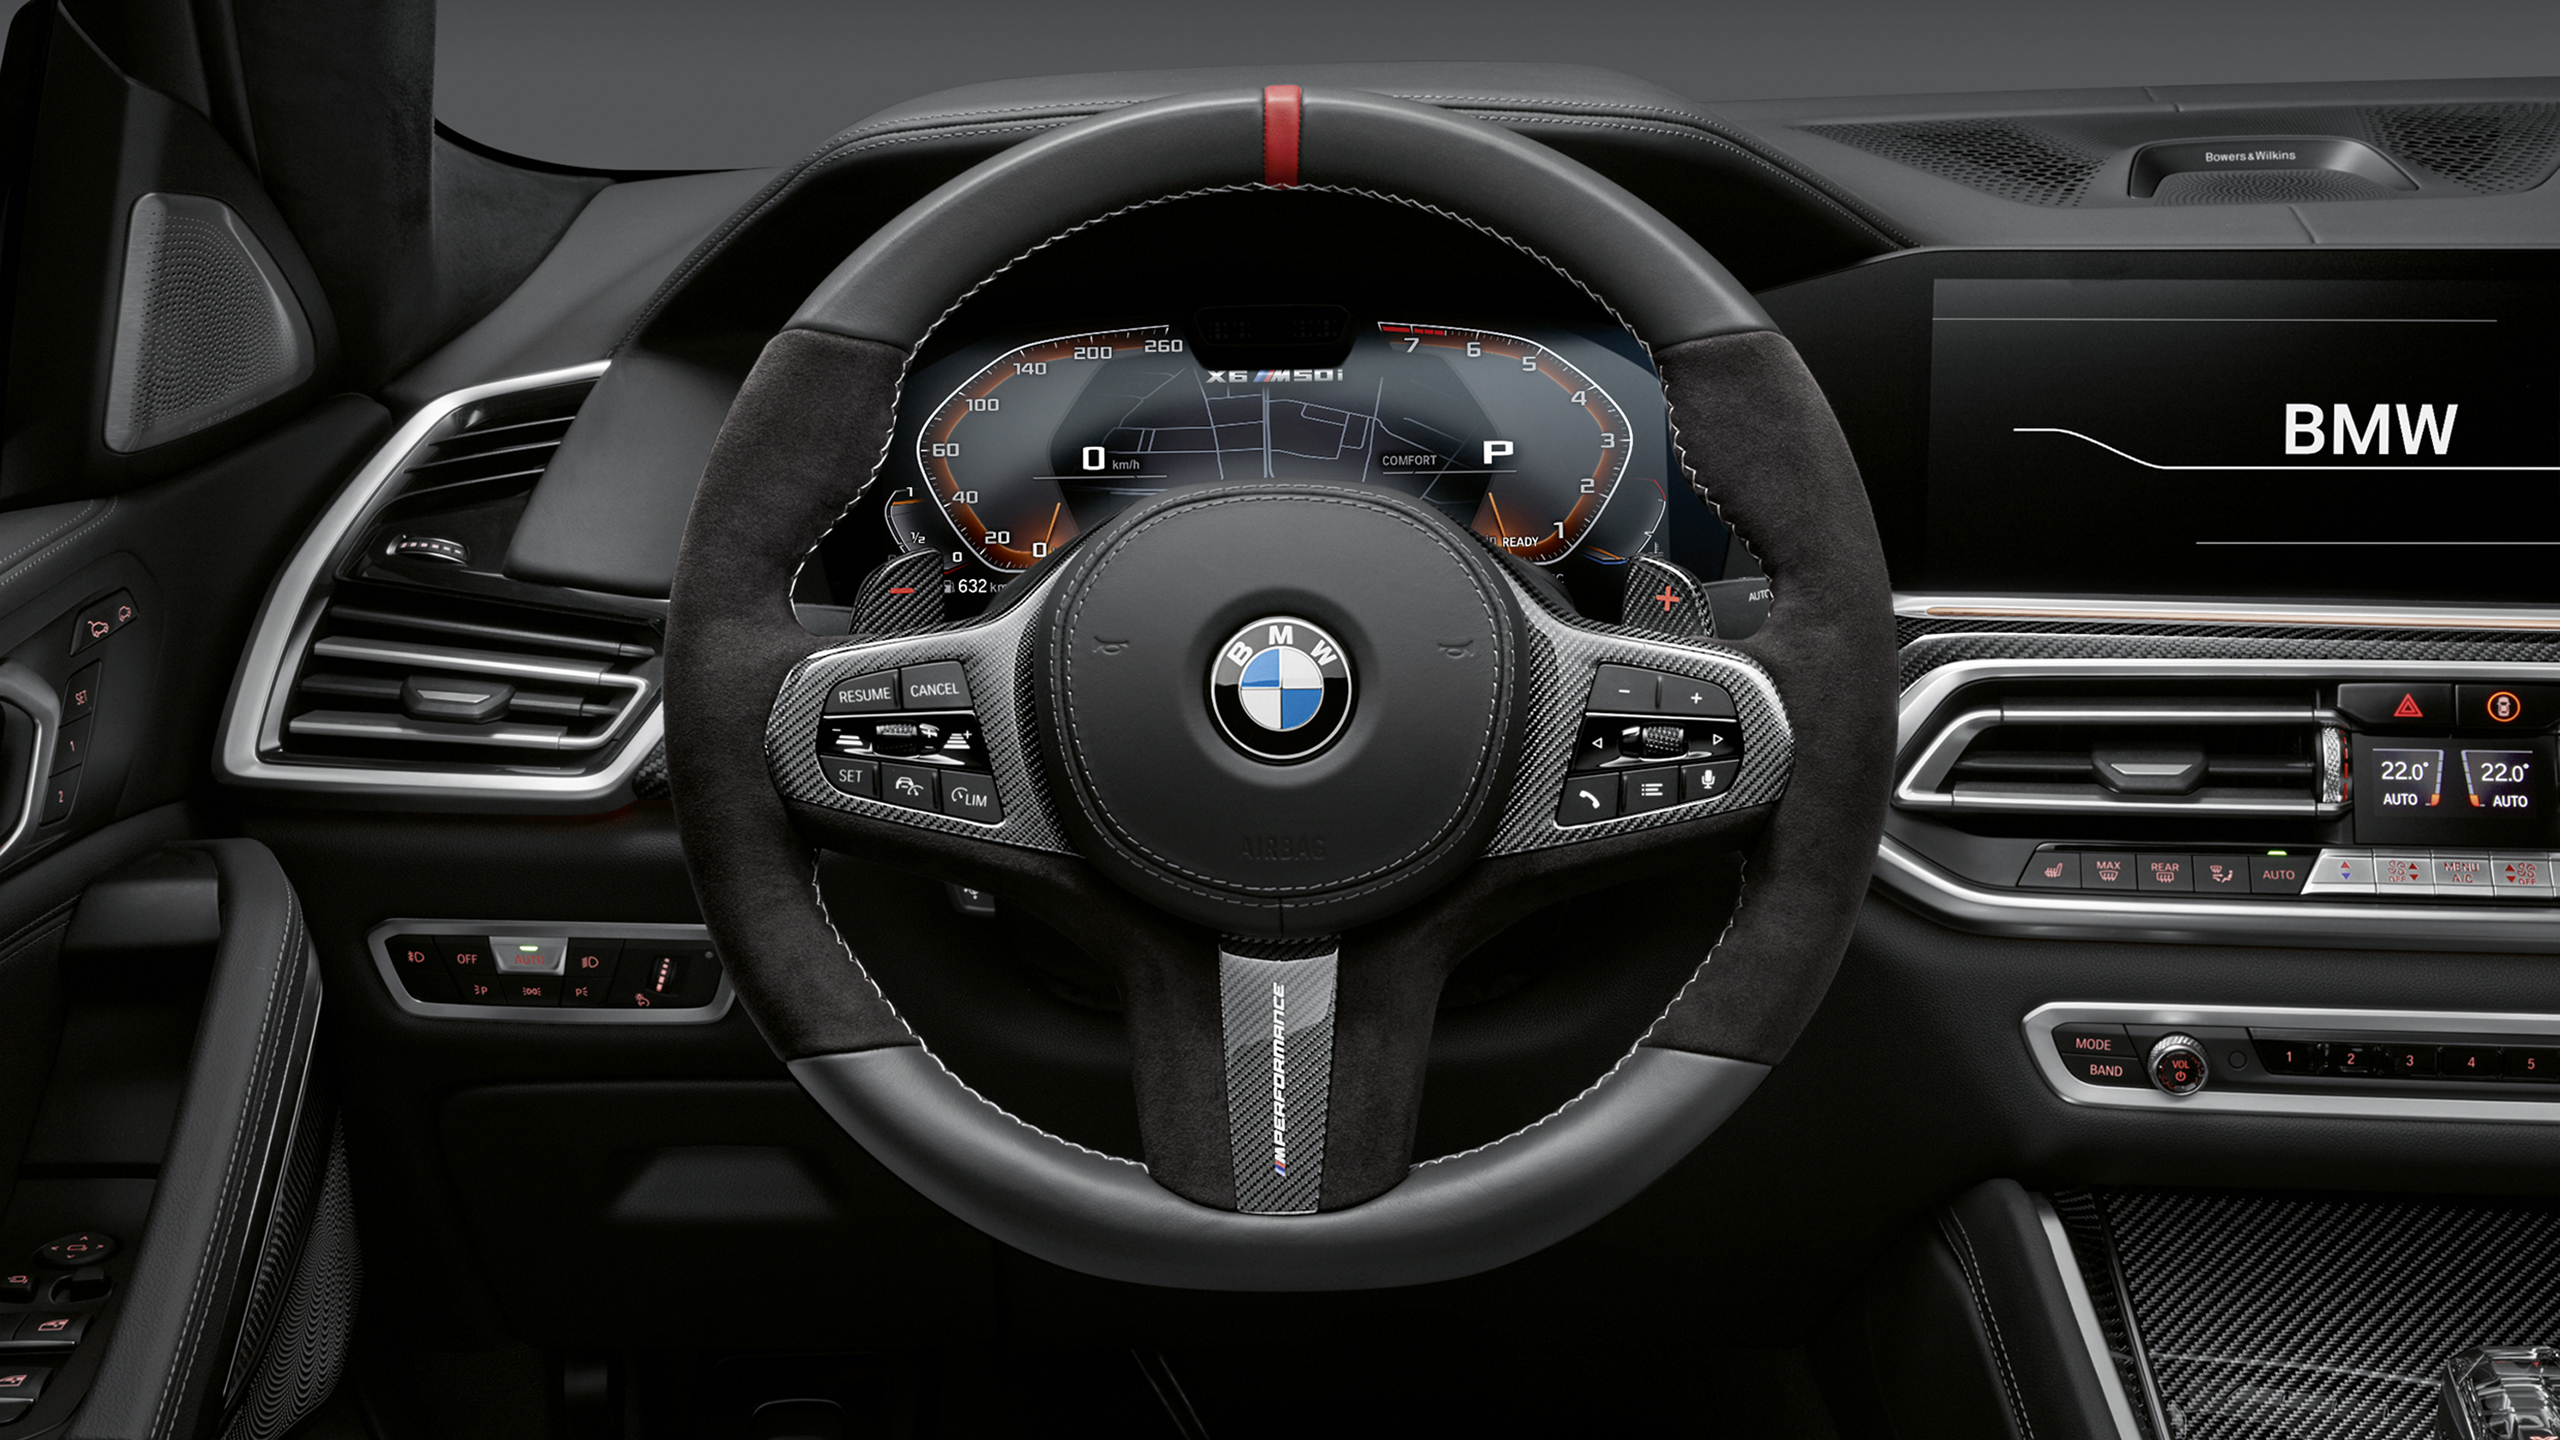 Bmw X6 M Performance Parts 2019 Interior Wallpaper Hd